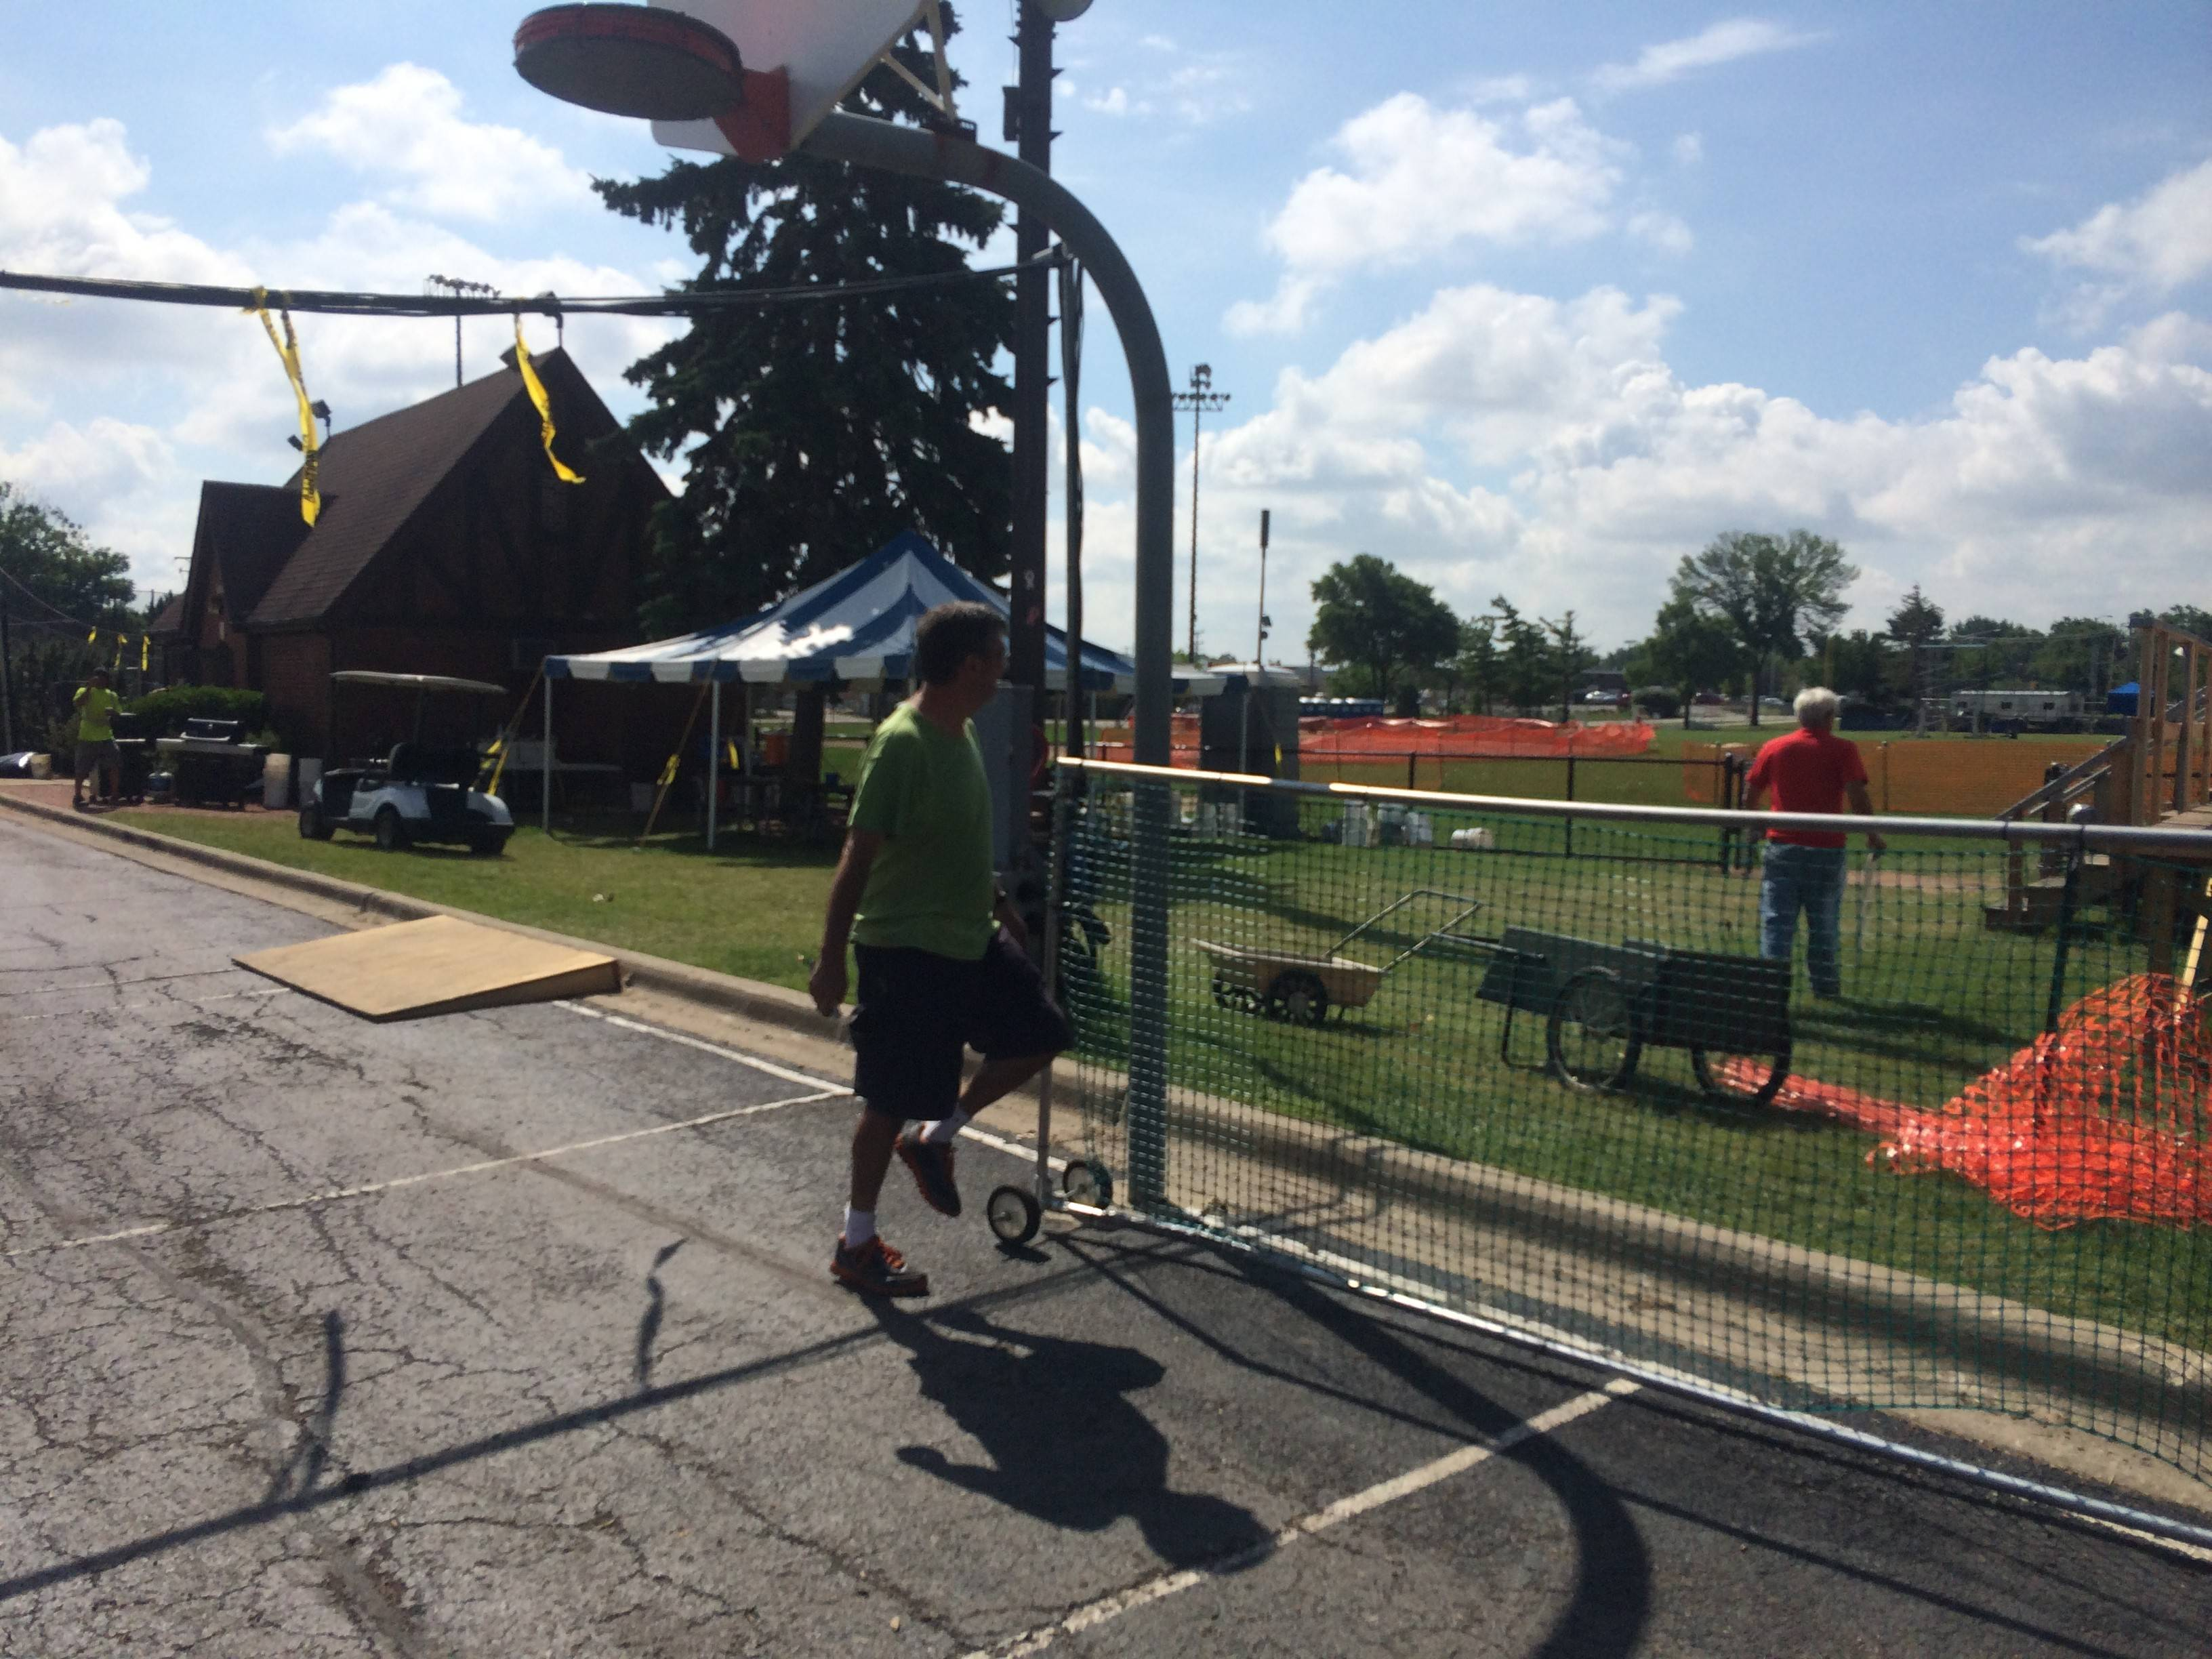 Tom Hahn, 65, of Arlington Heights moves a net while cleaning up the Frontier Days festival in Arlington Heights on Monday.